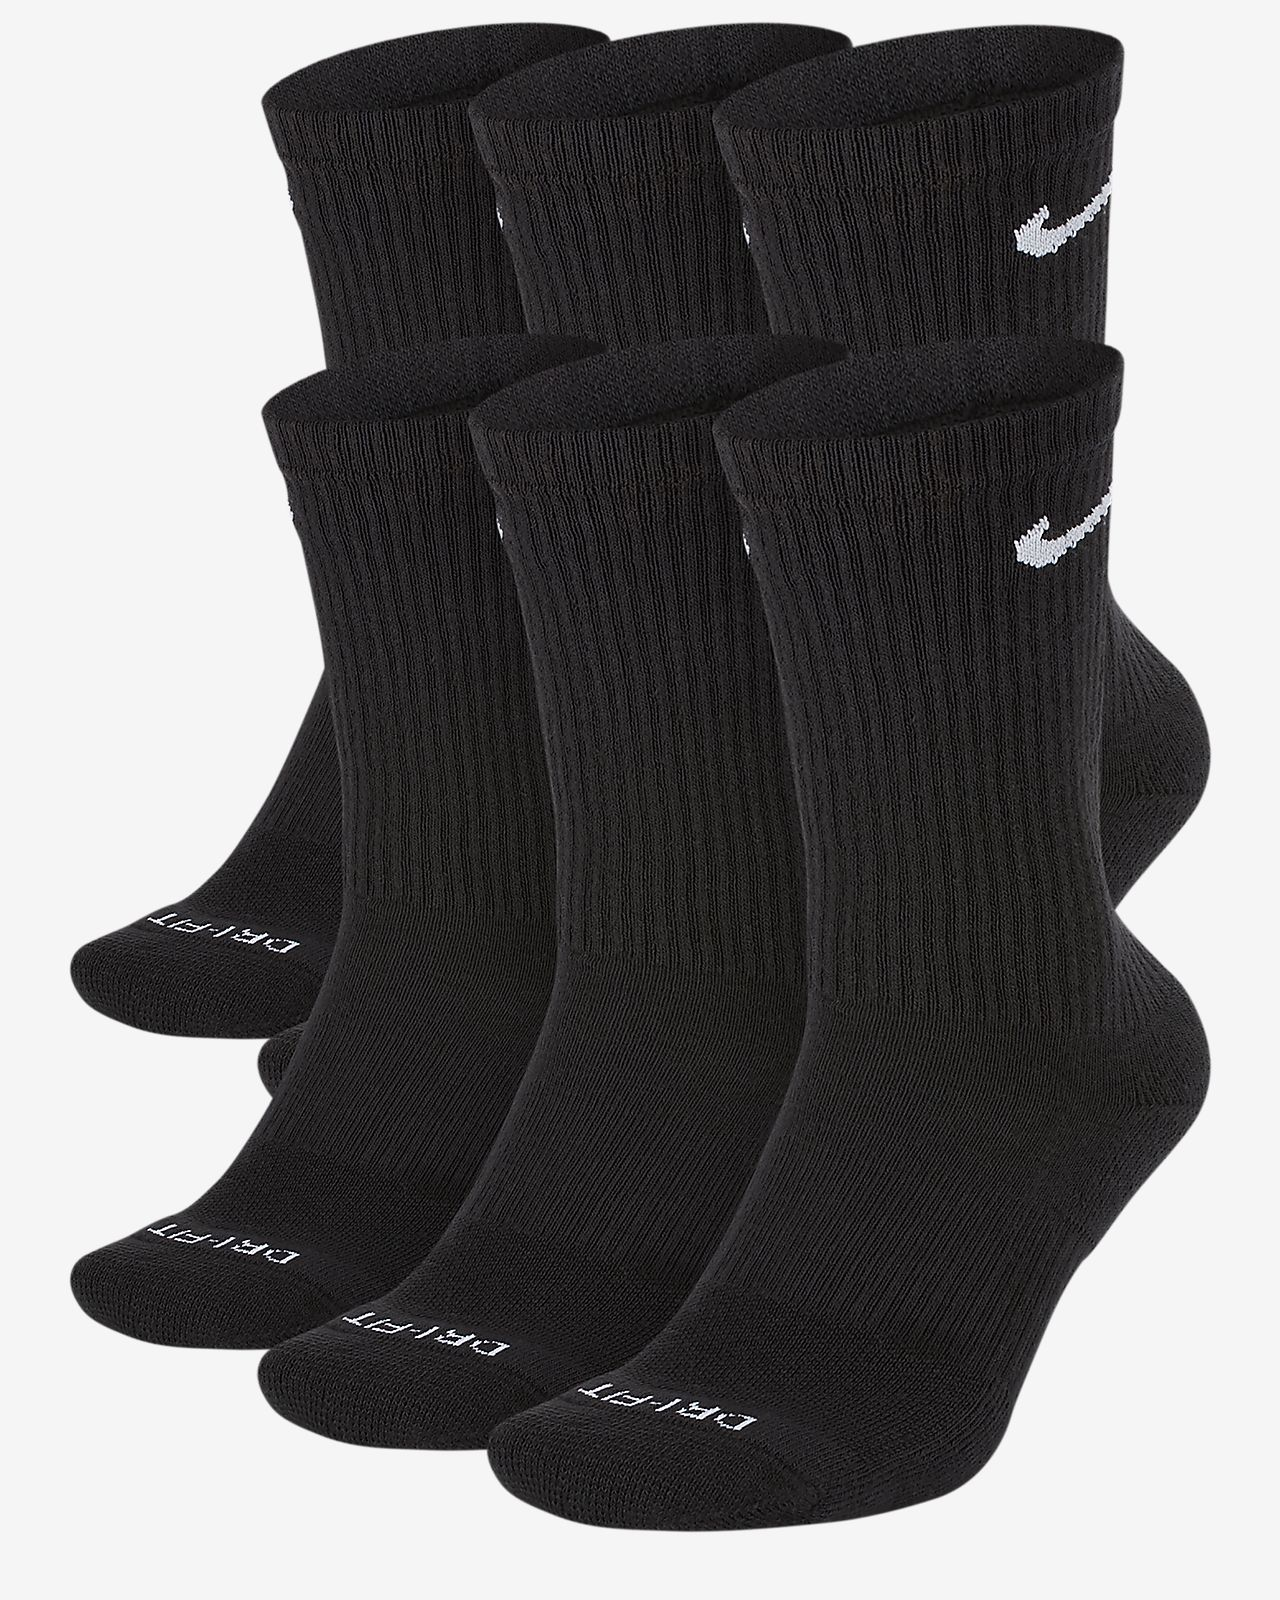 Nike Everyday Cushion Ankle Training Socks 6 Pair